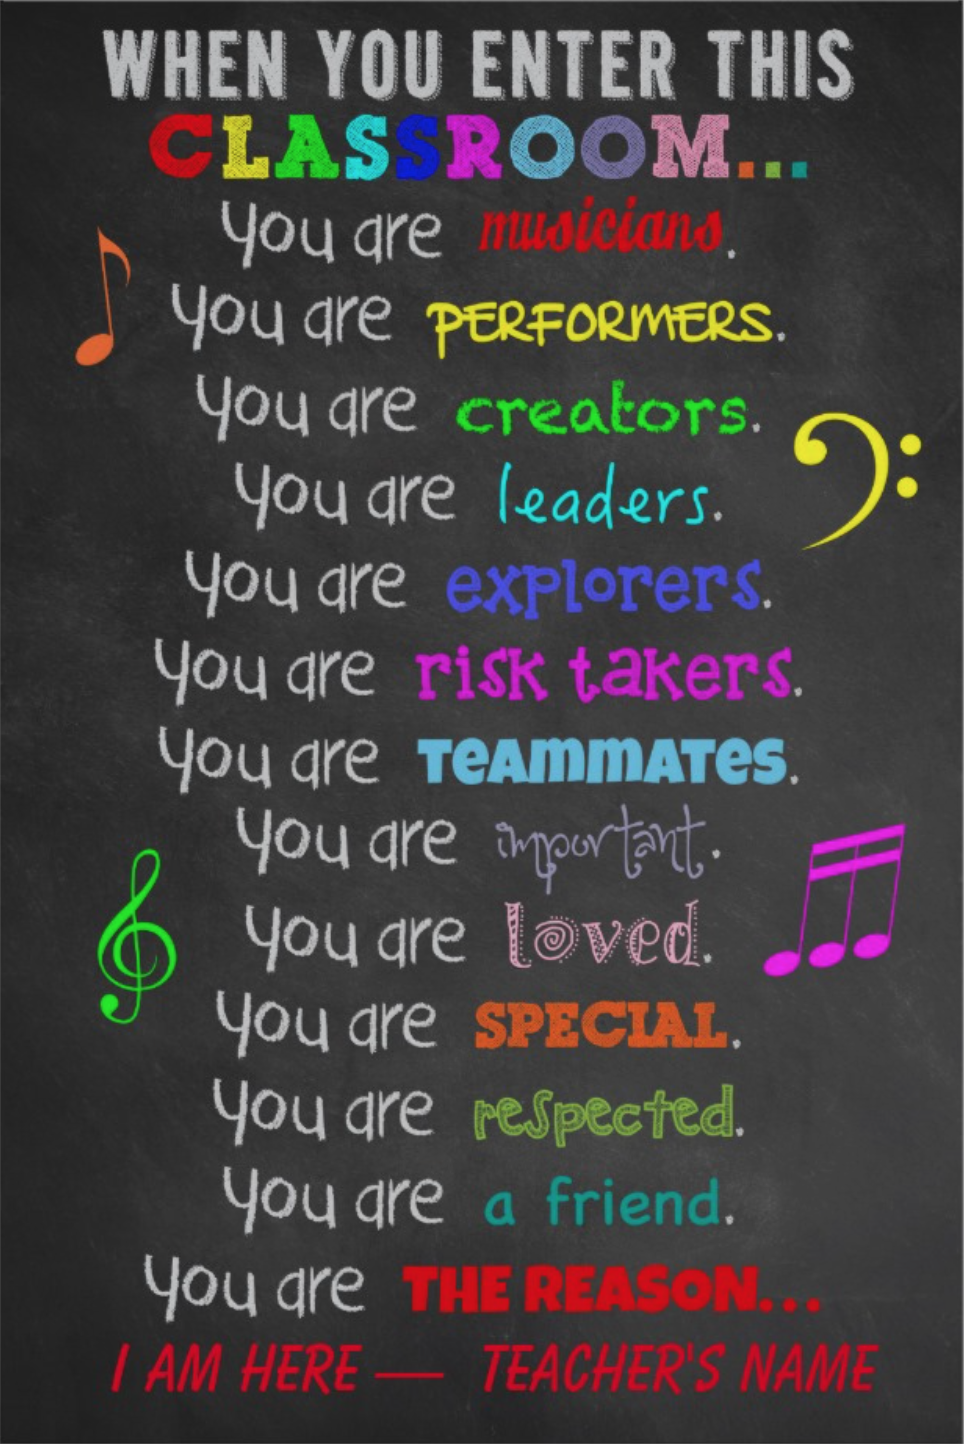 Music Teacher Poster - When You Enter This Classroom ...